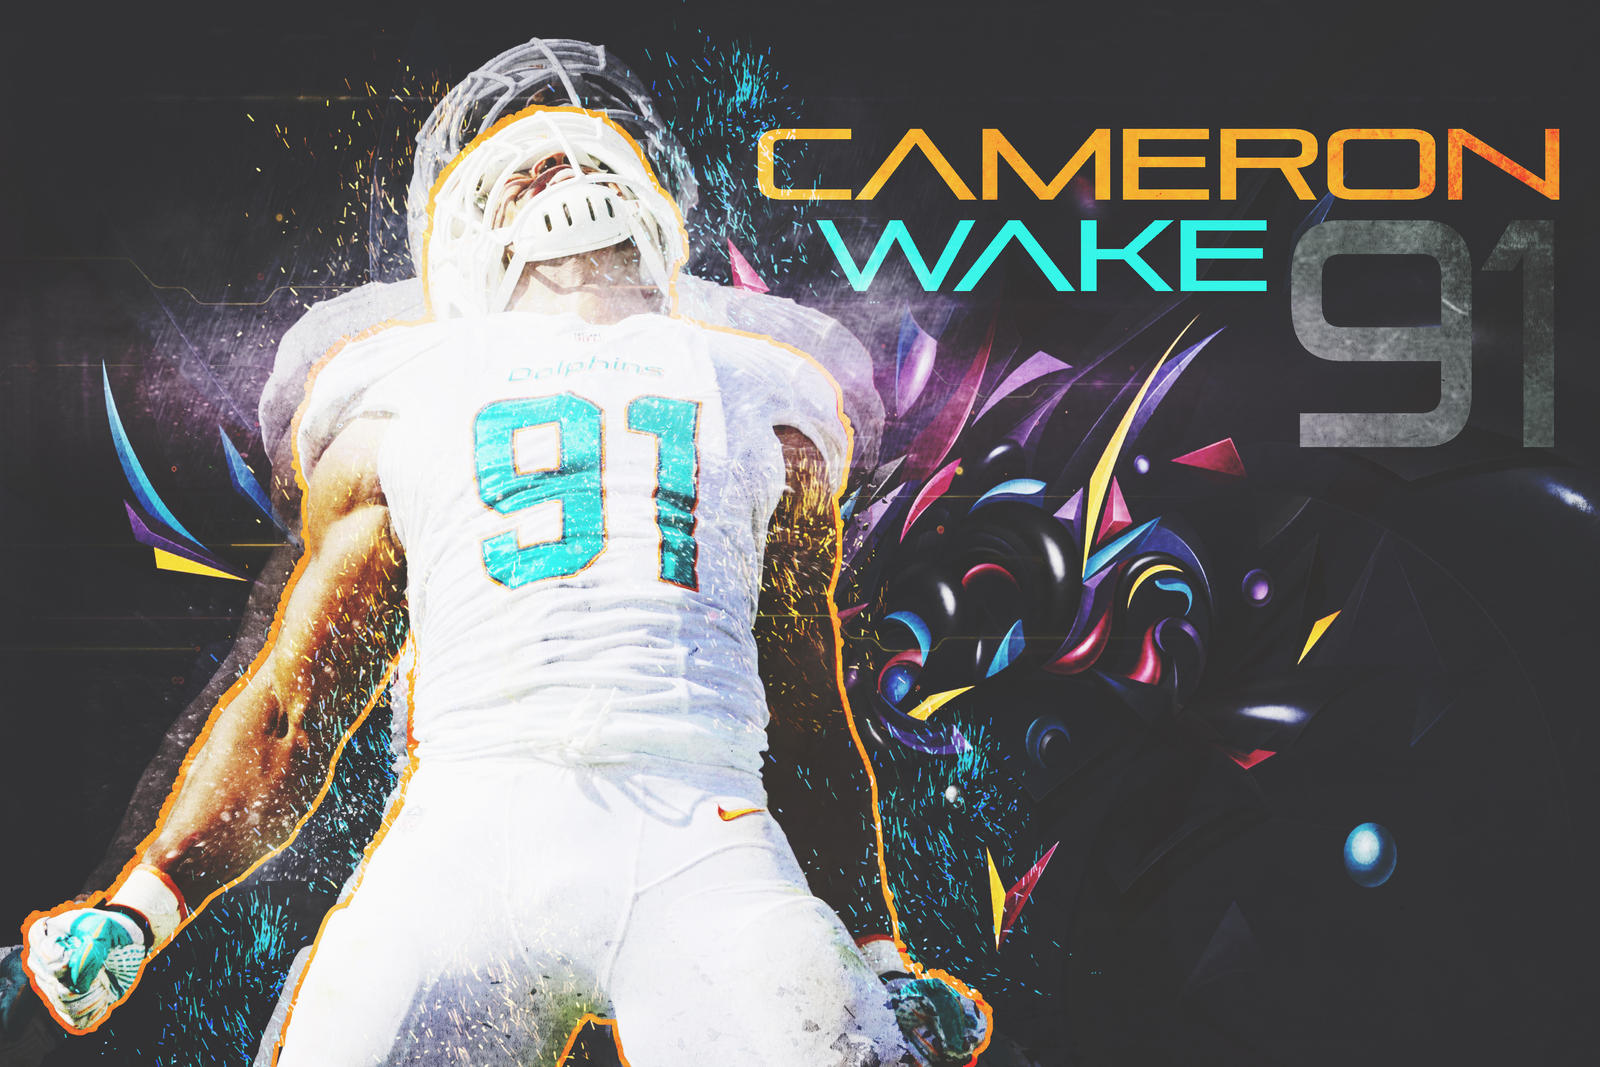 Cameron Wake Wallpaper by Bengal by bengalbro on DeviantArt